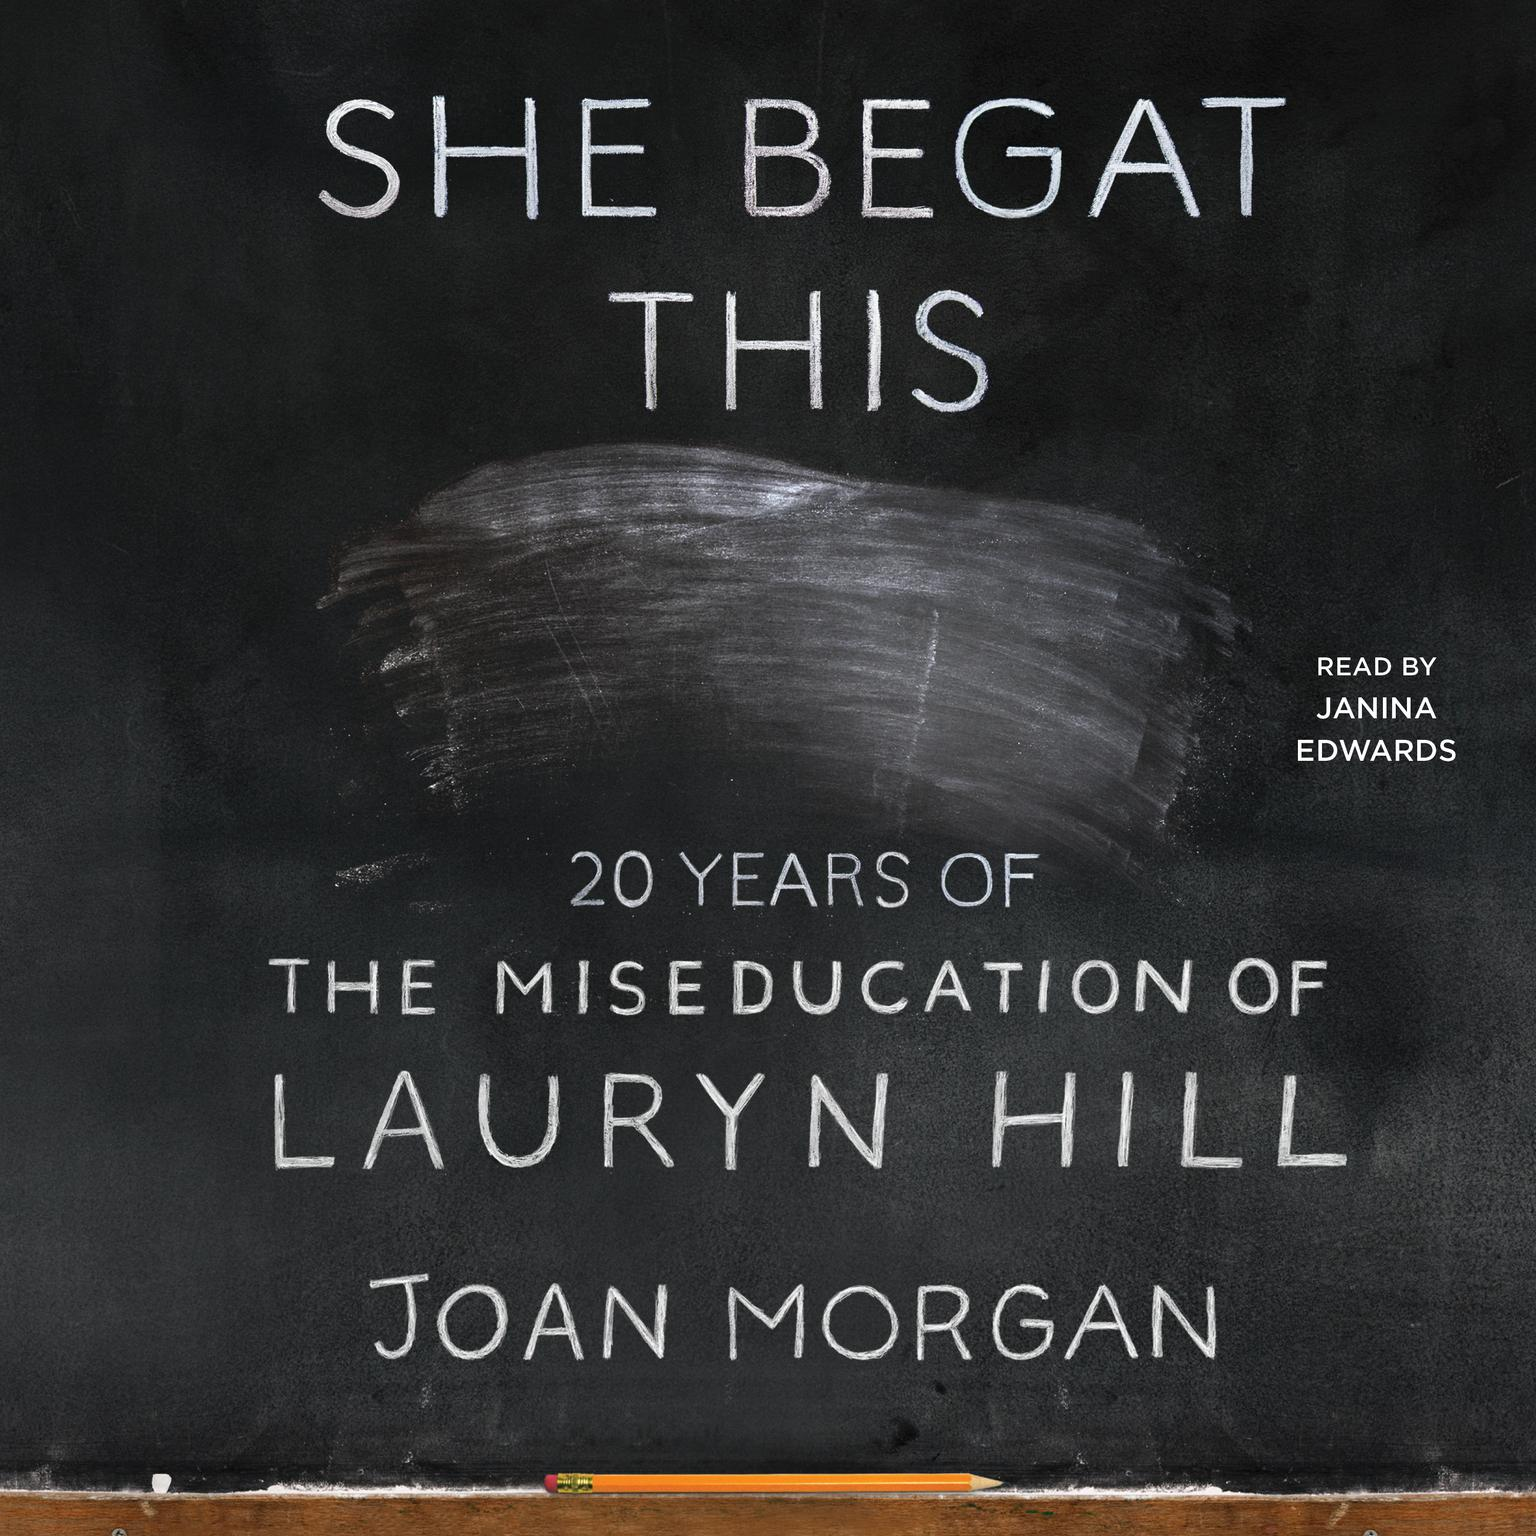 the miseducation of lauryn hill download free